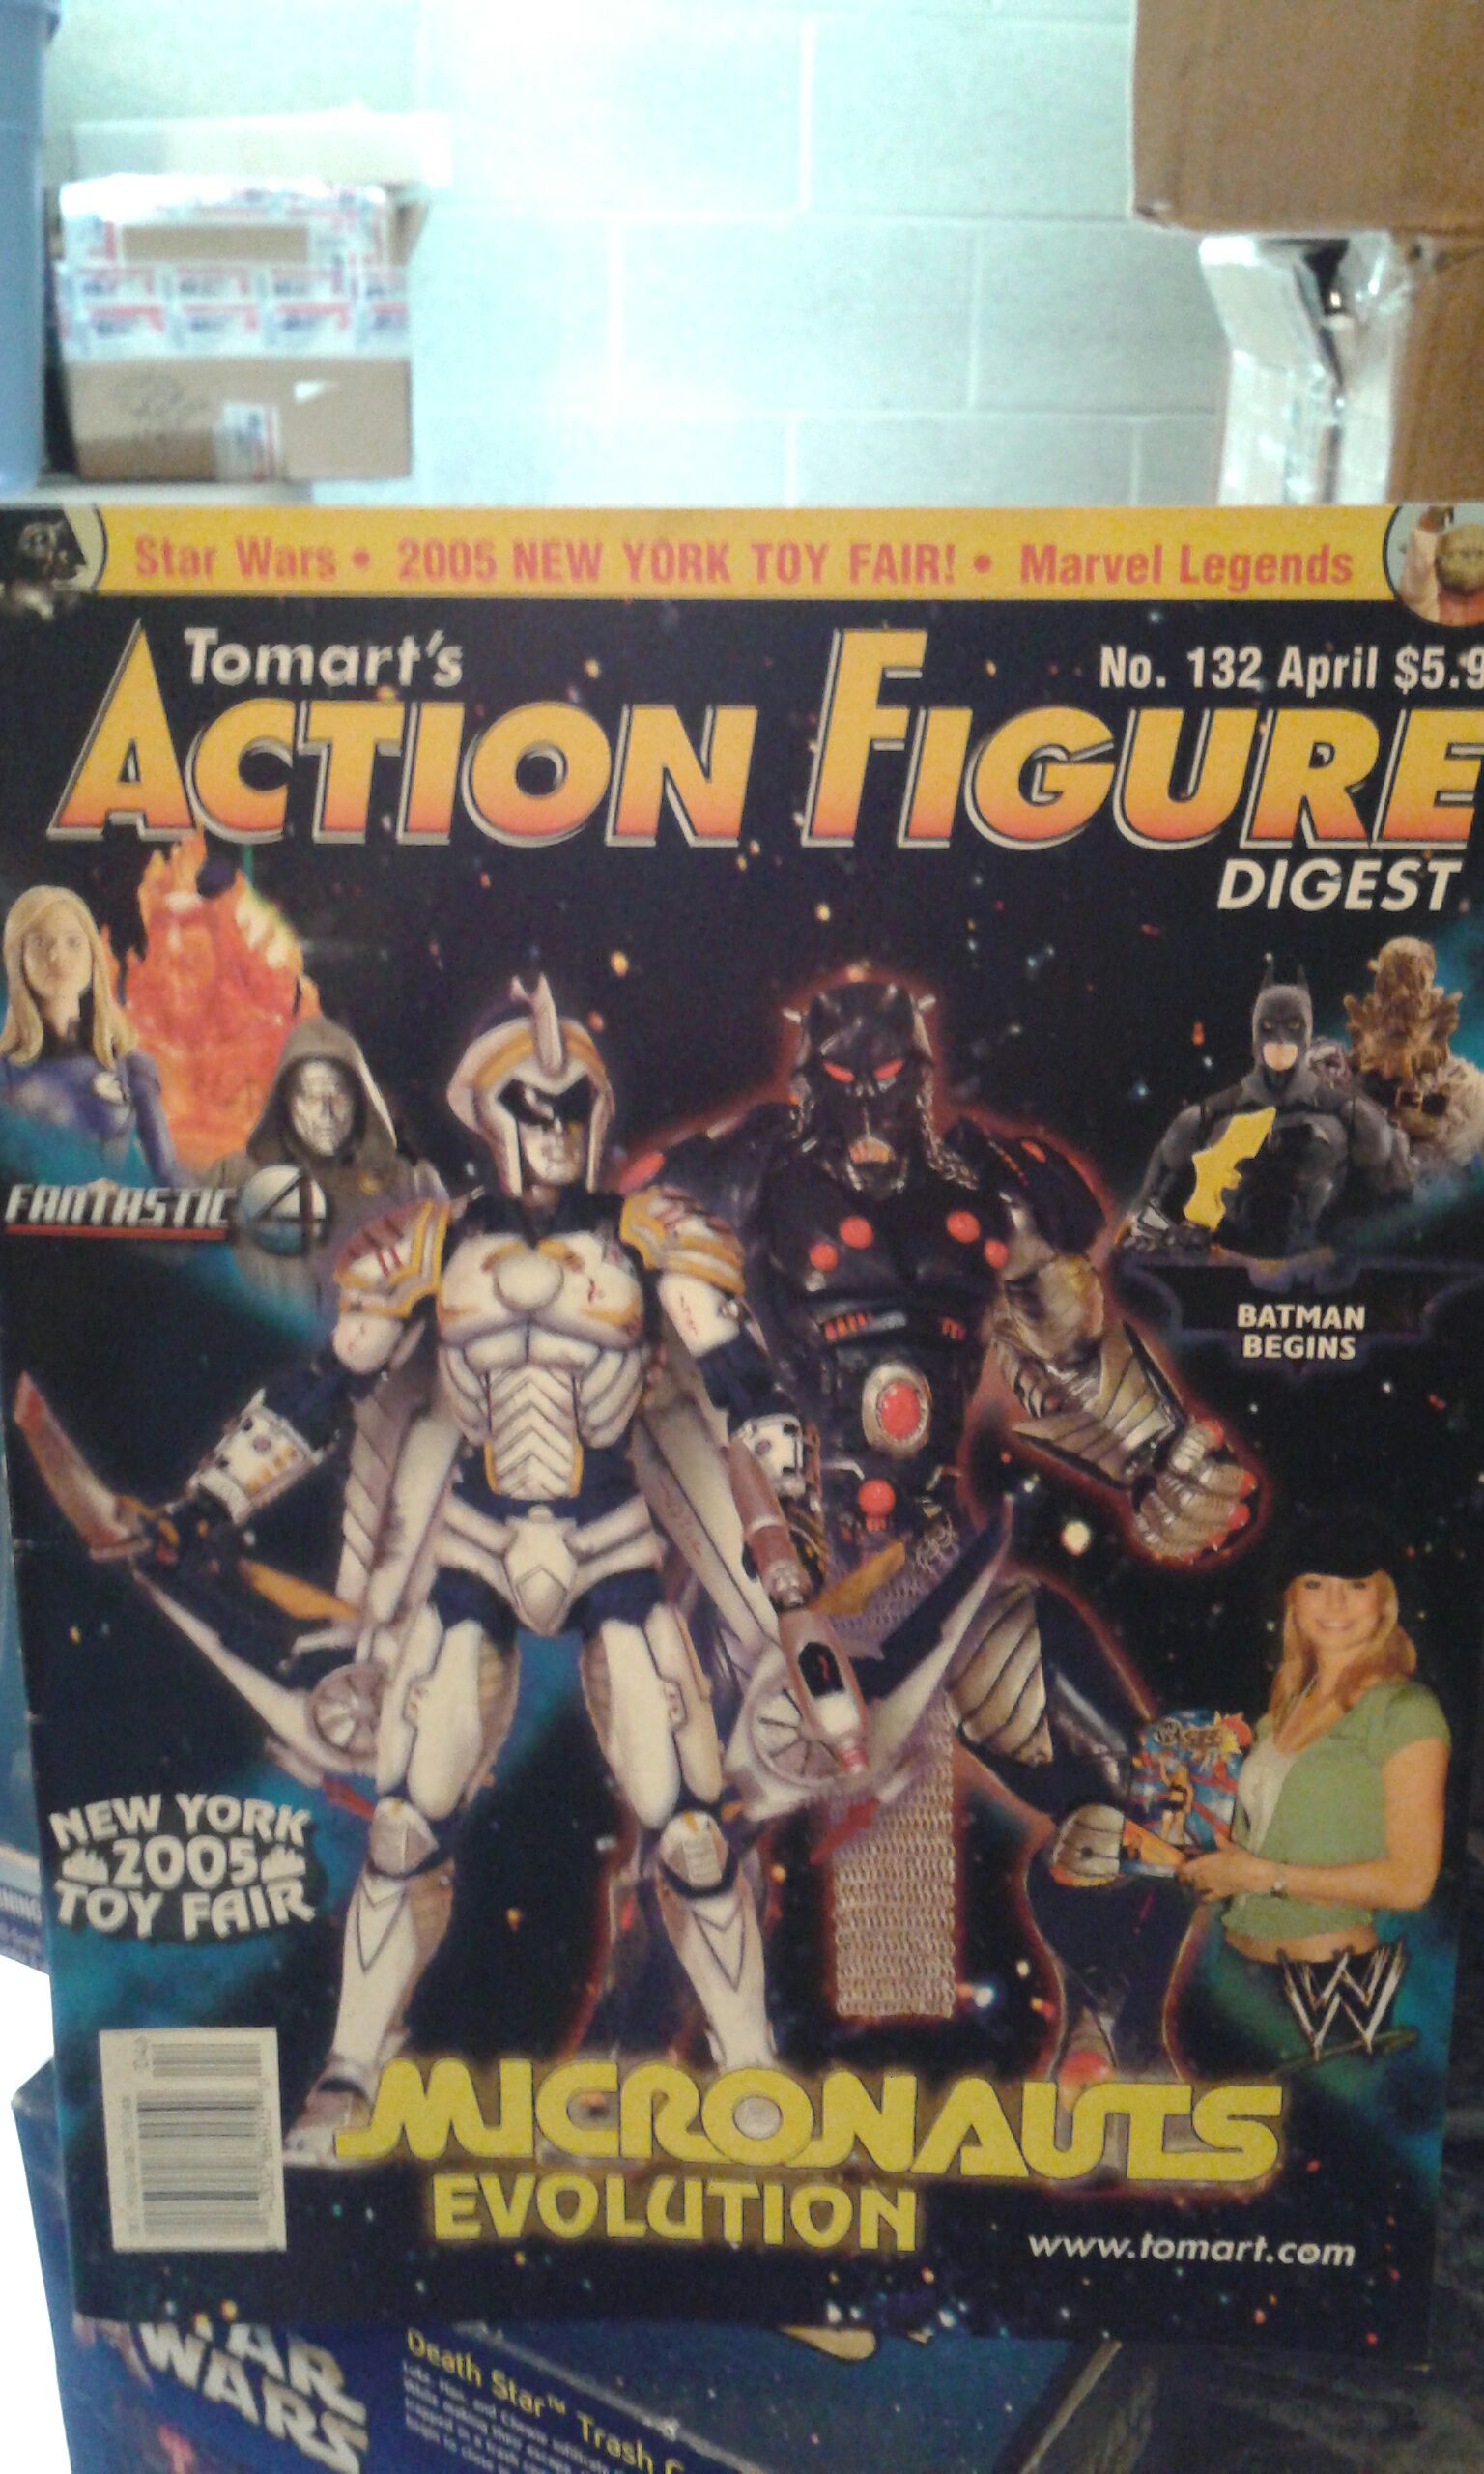 Tomart's Action Figure Digest #132 Star Wars - Tomarts Publishing (1995) front image (front cover)